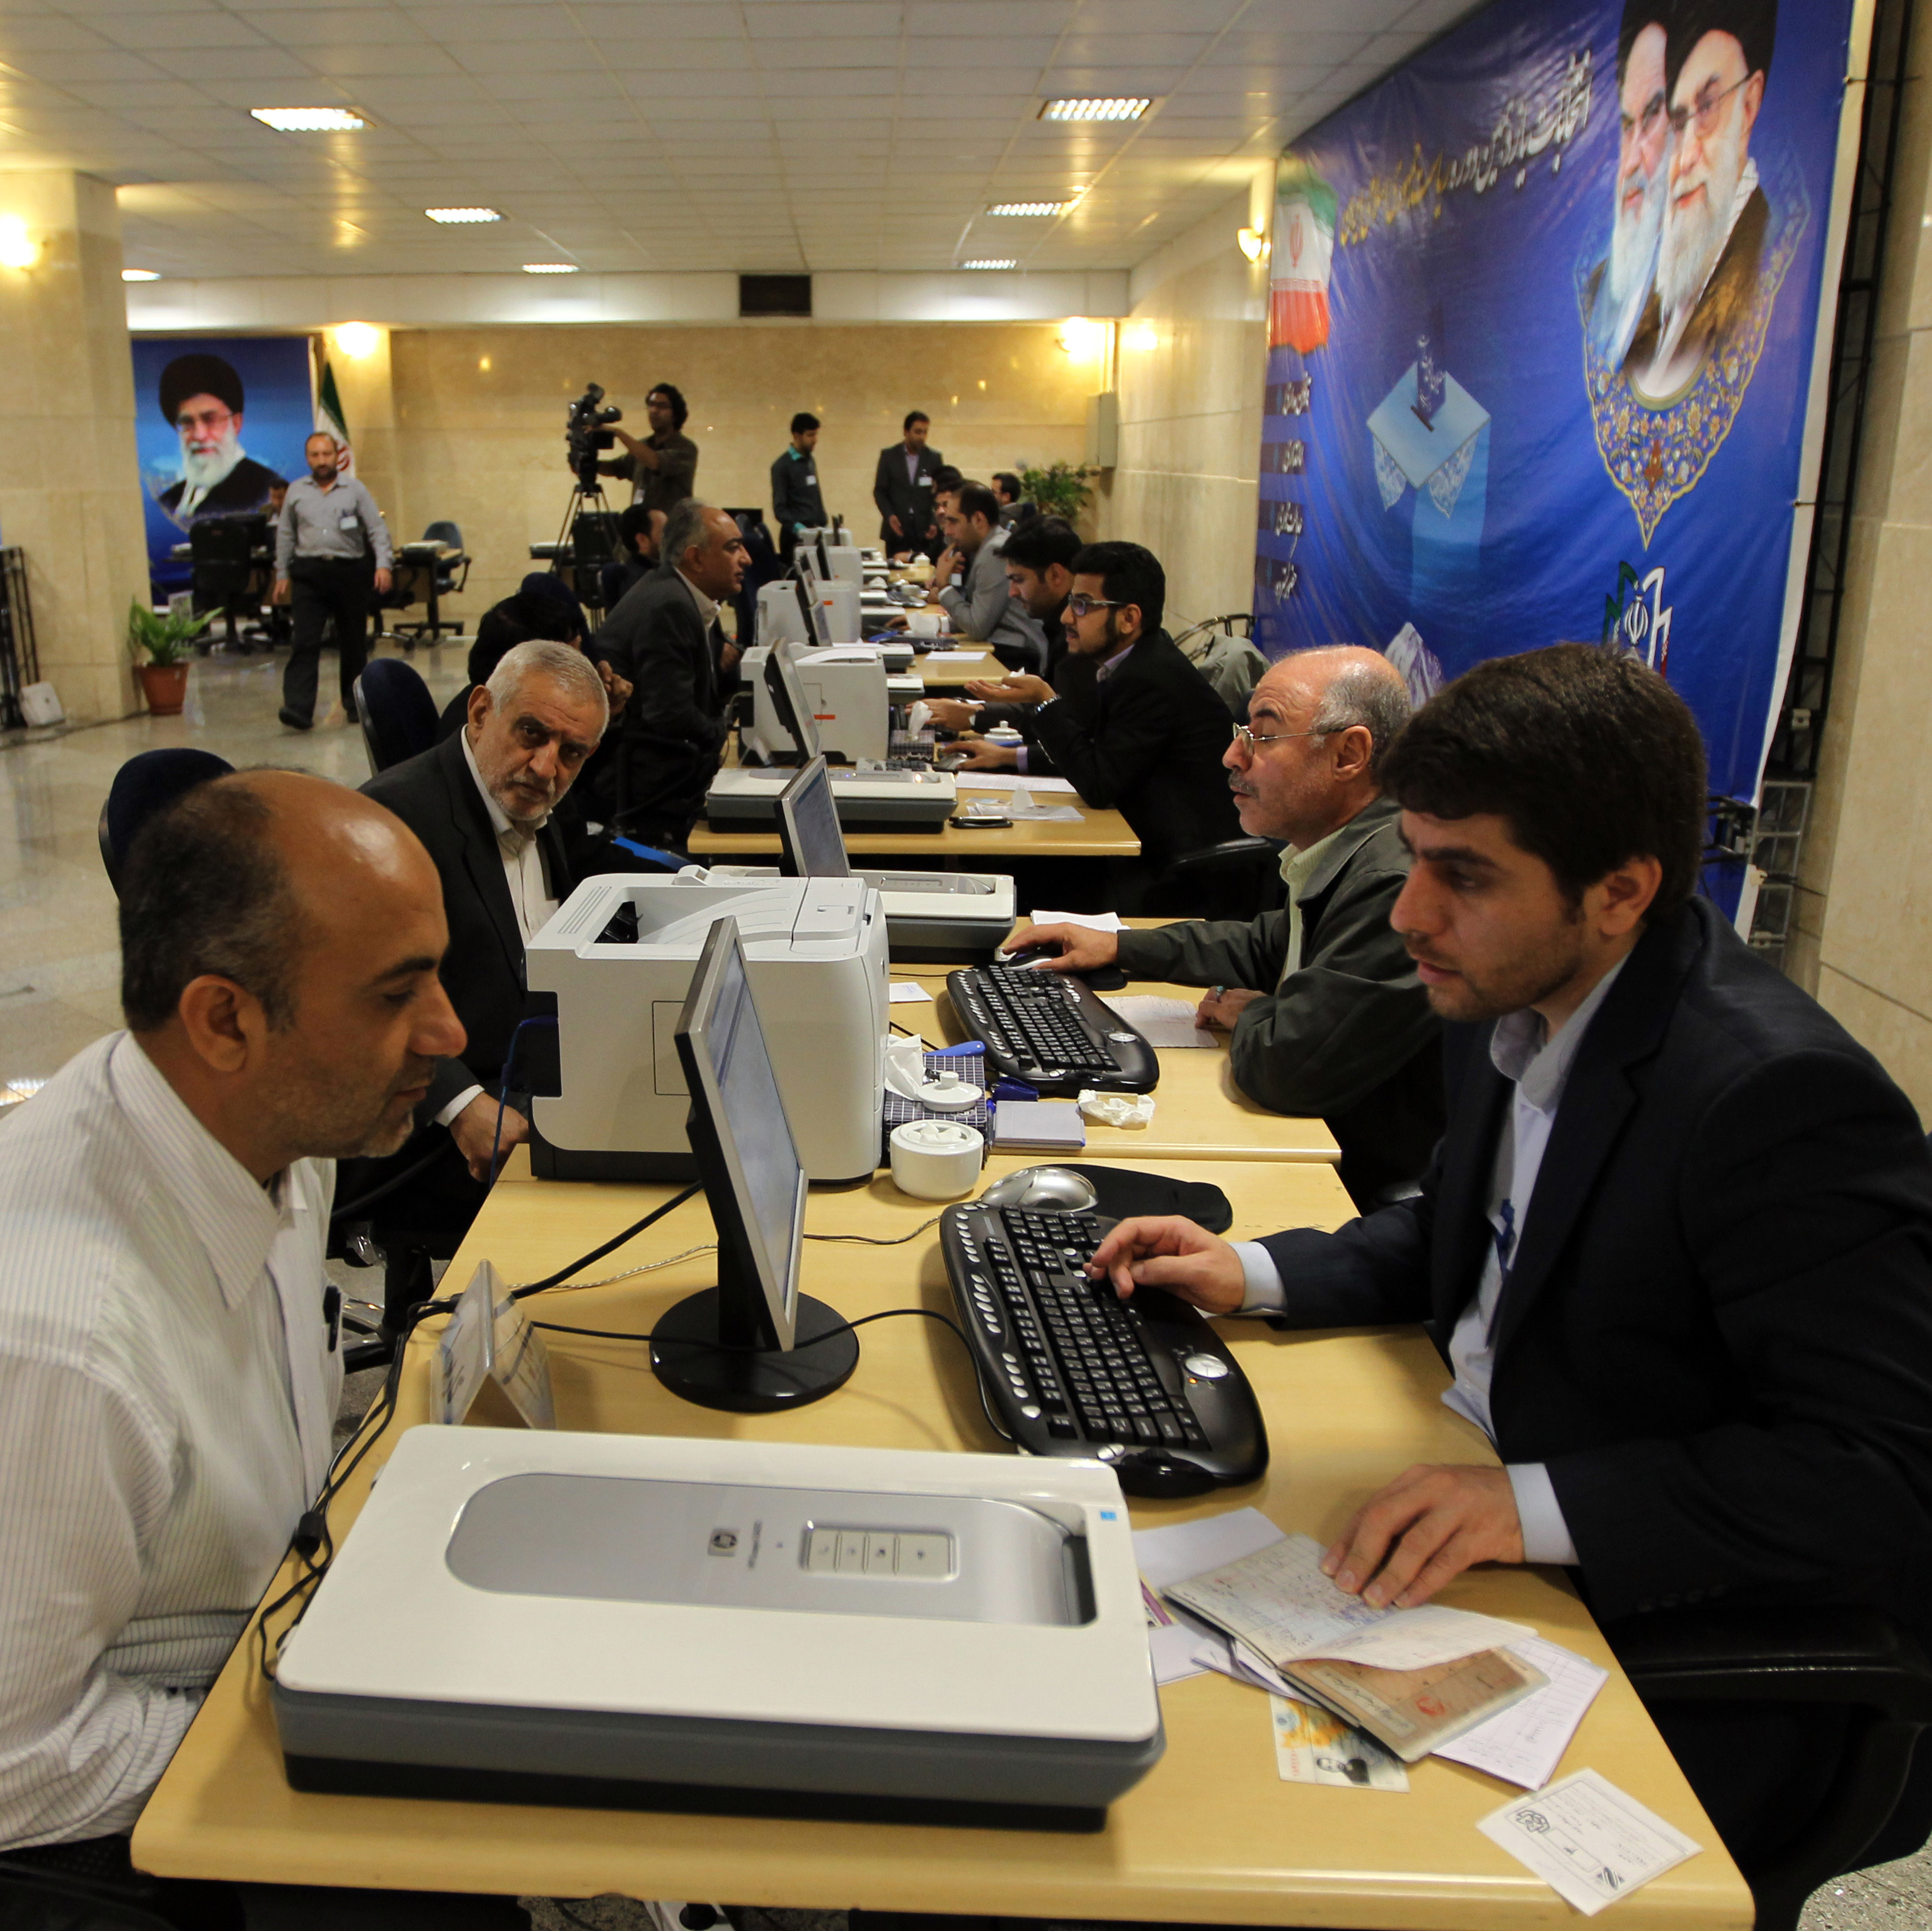 Iranian men register their candidacy for the June presidential election at the Interior Ministry in Tehran earlier this month. Some 700 candidates have registered, but most will be disqualified.